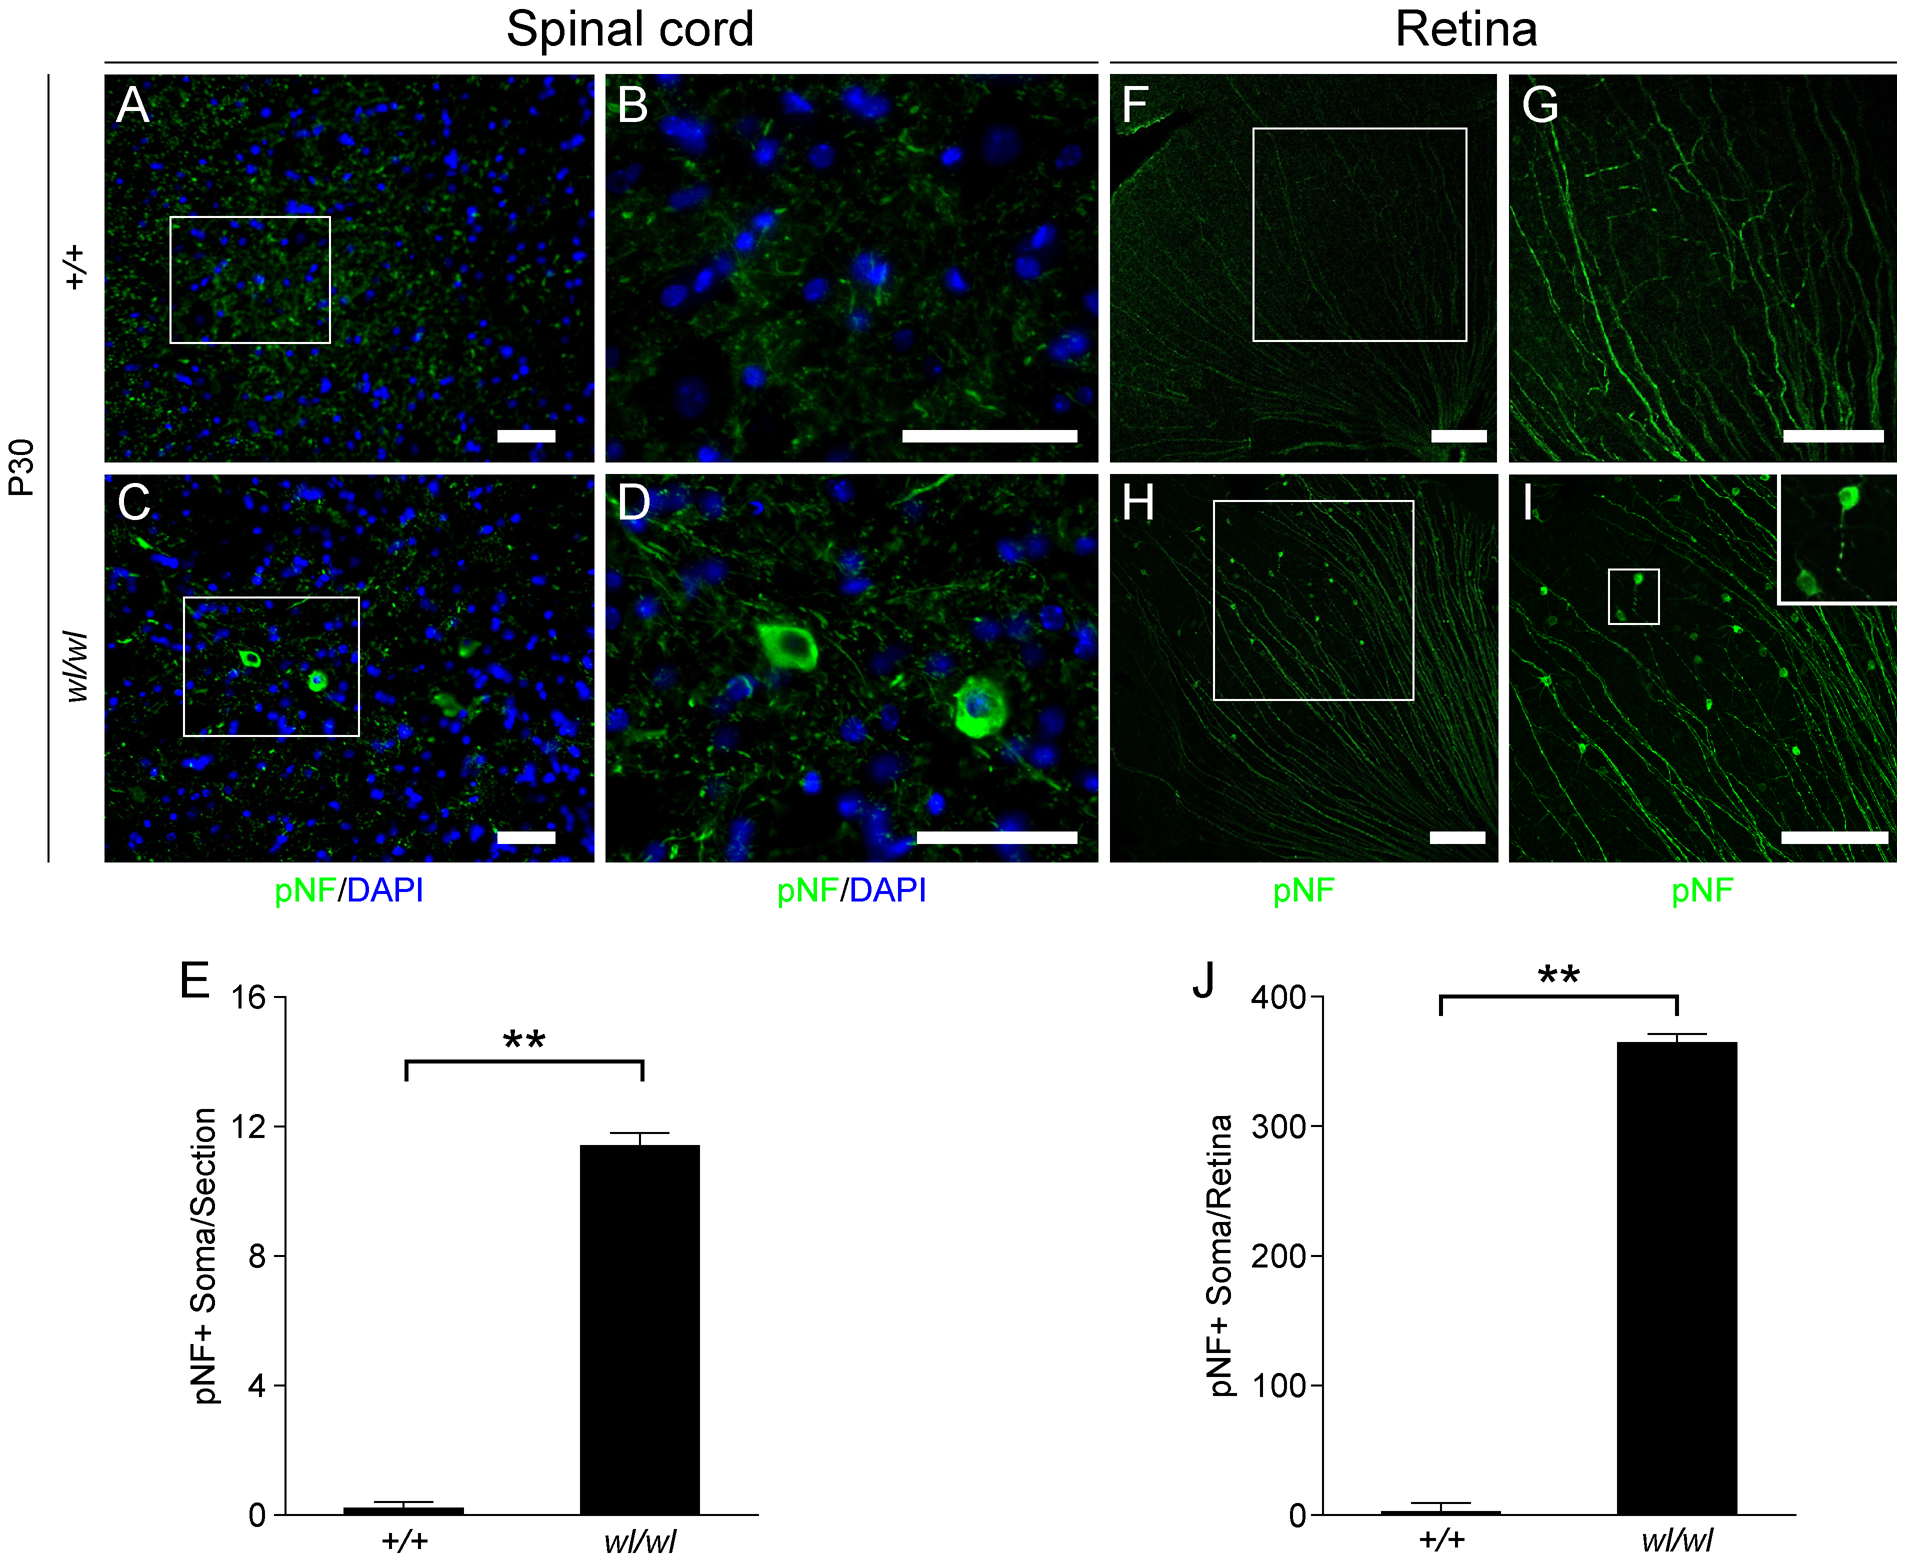 Phosphorylated neurofilament (pNF) accumulates in somas of spinal cord neurons and retinal ganglion cells in <i>wl/wl</i> mice.